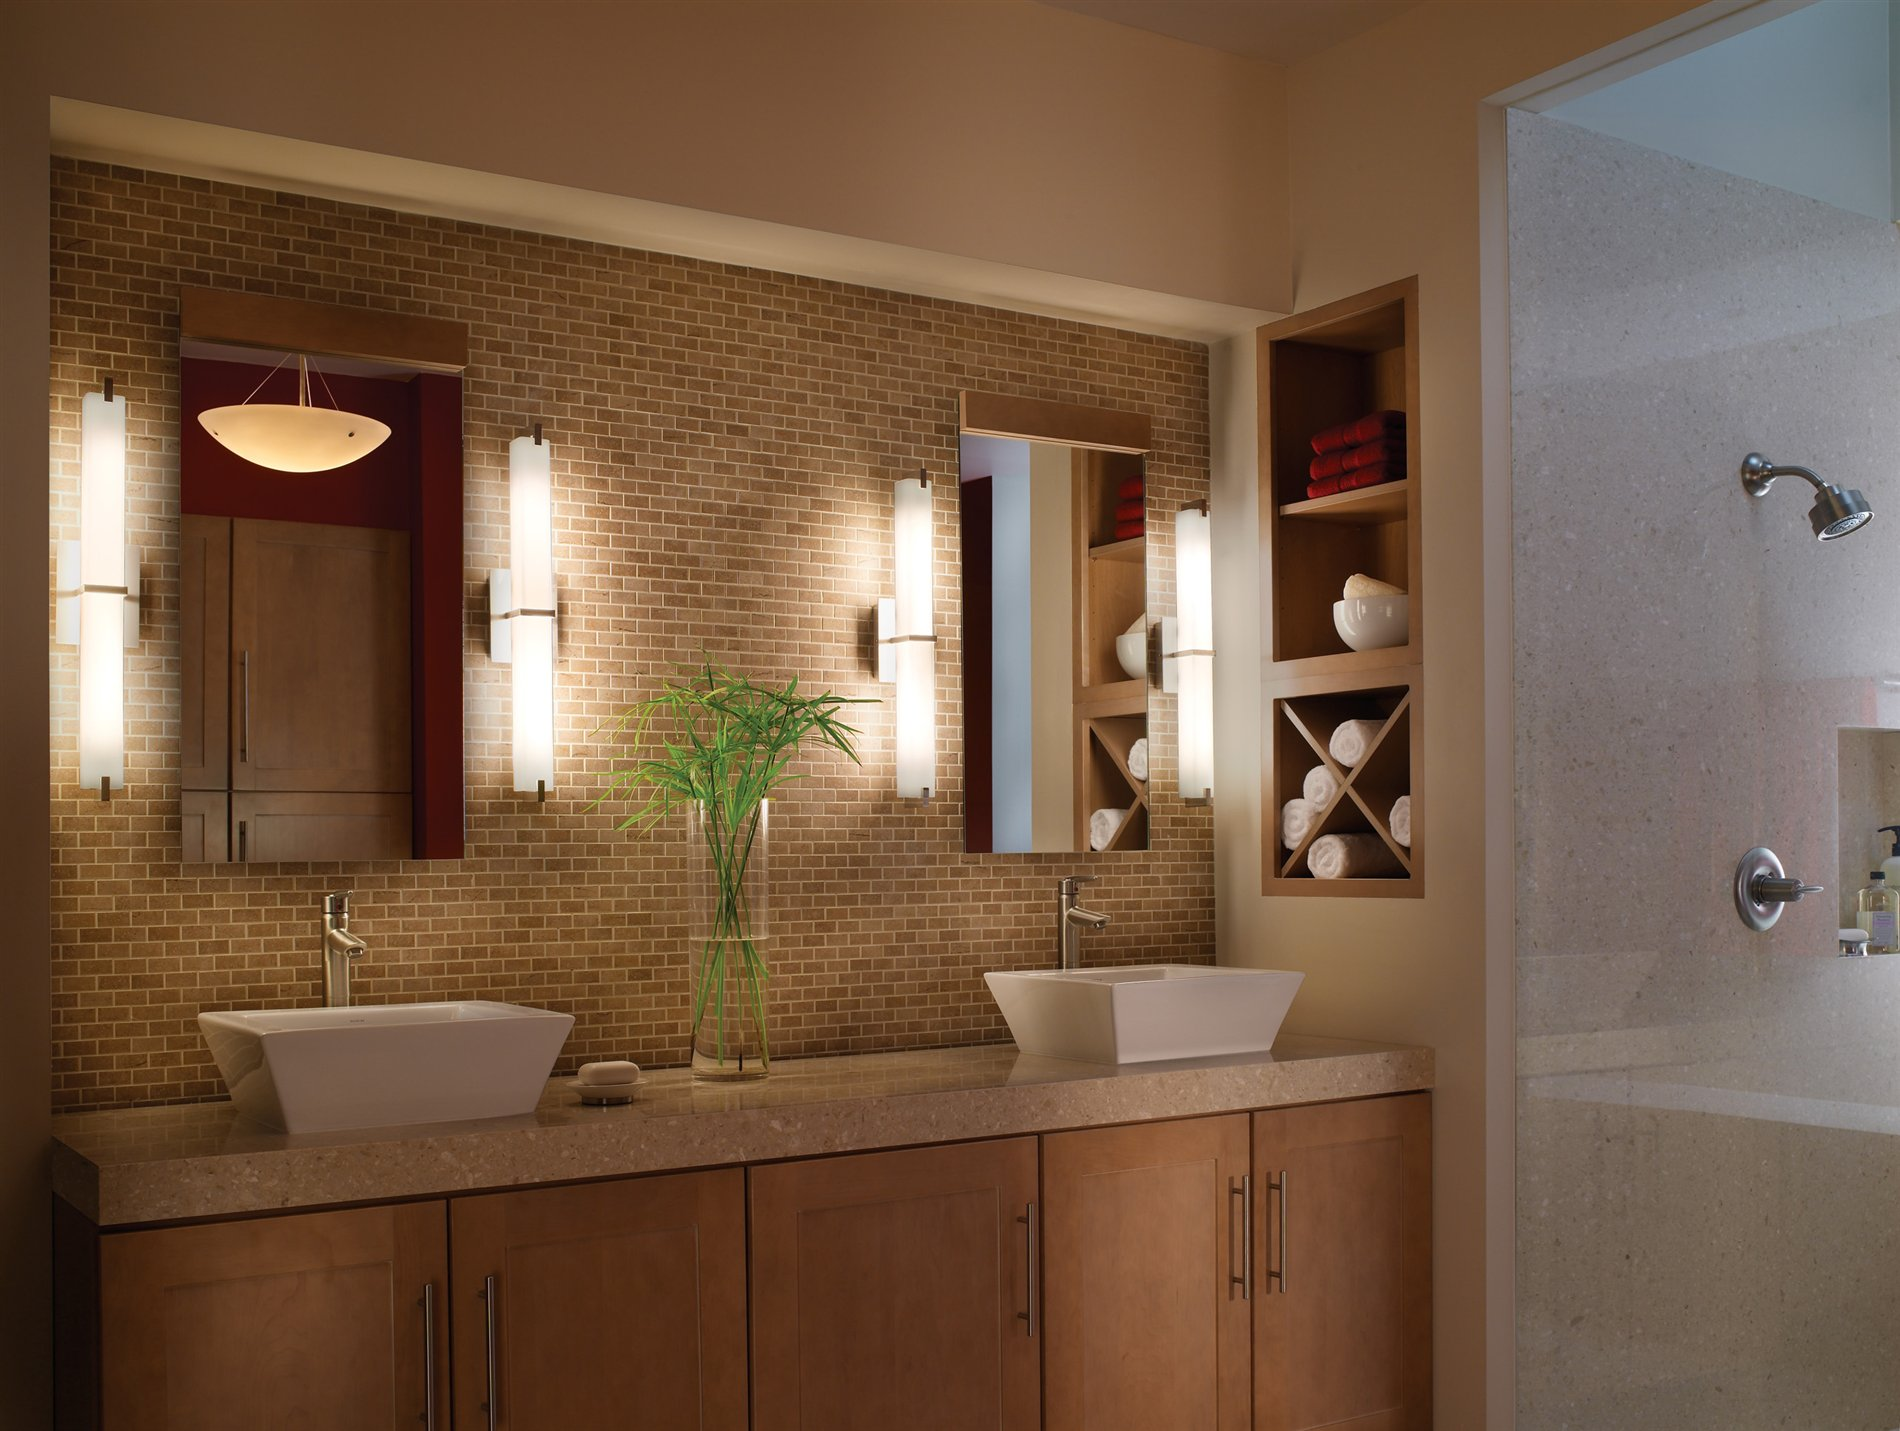 Bathroom Lights Side Of Mirror contemporary bath lighting, modern bathroom light fixtures